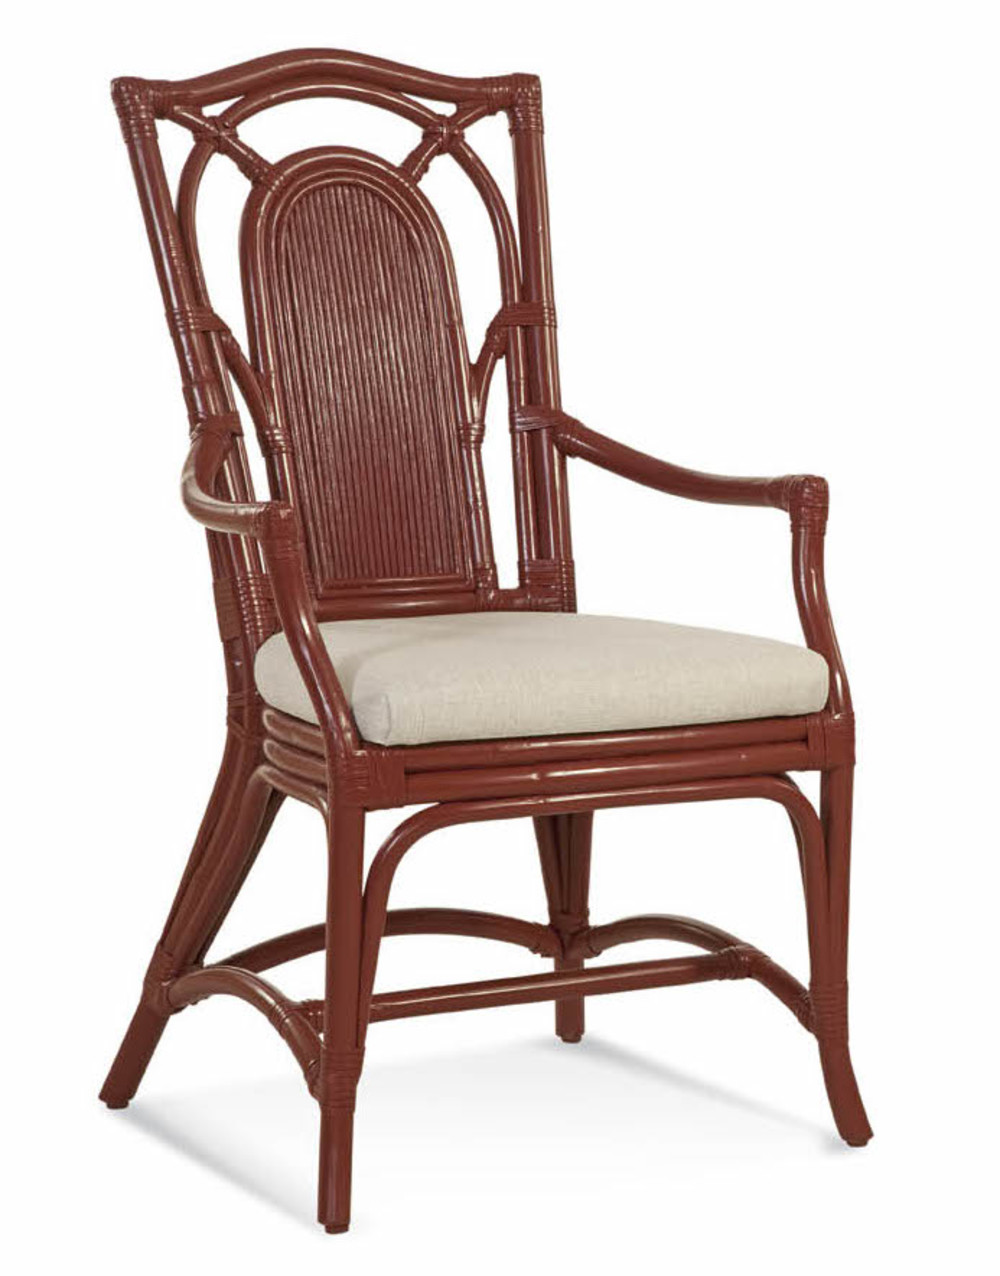 BRAXTON CULLER, INC - Bay Walk Arm Chair